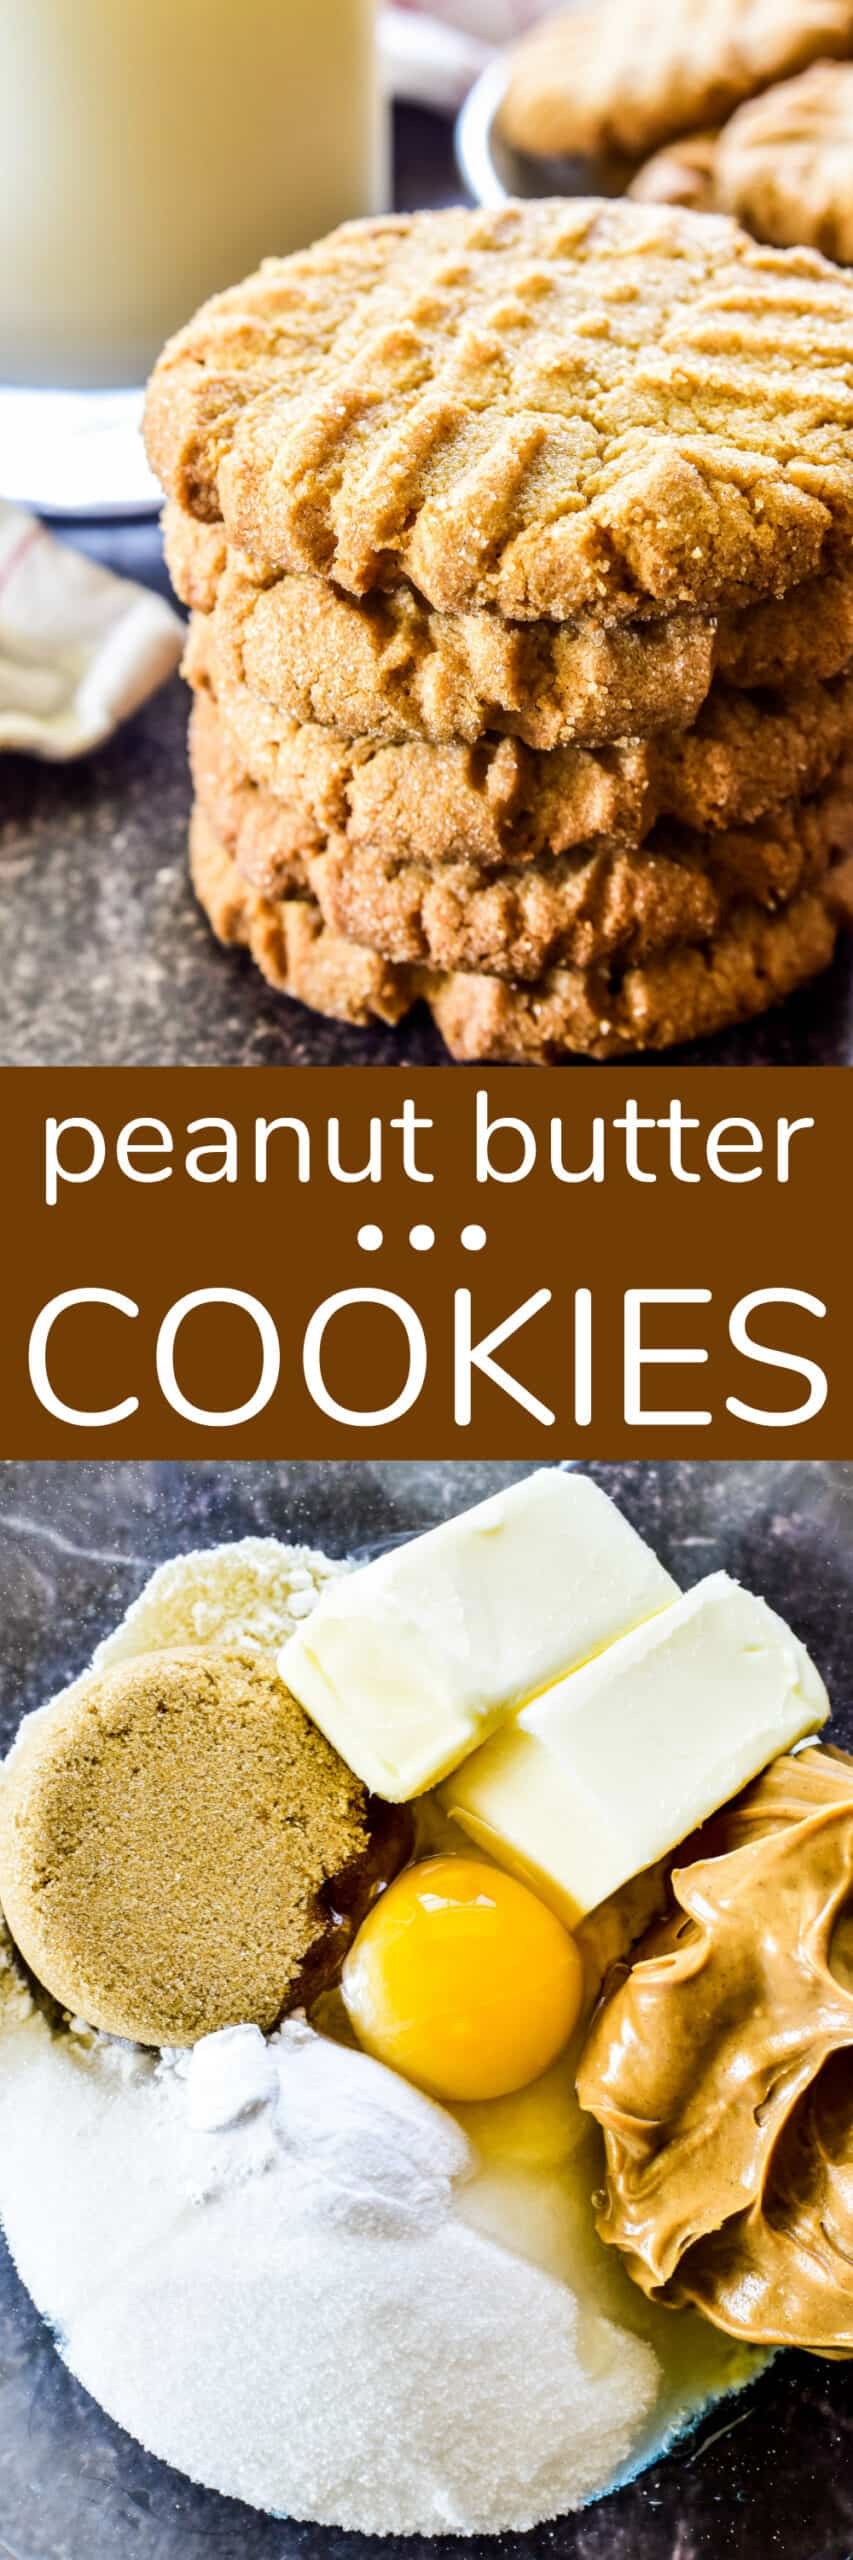 Collage image of Peanut Butter Cookies